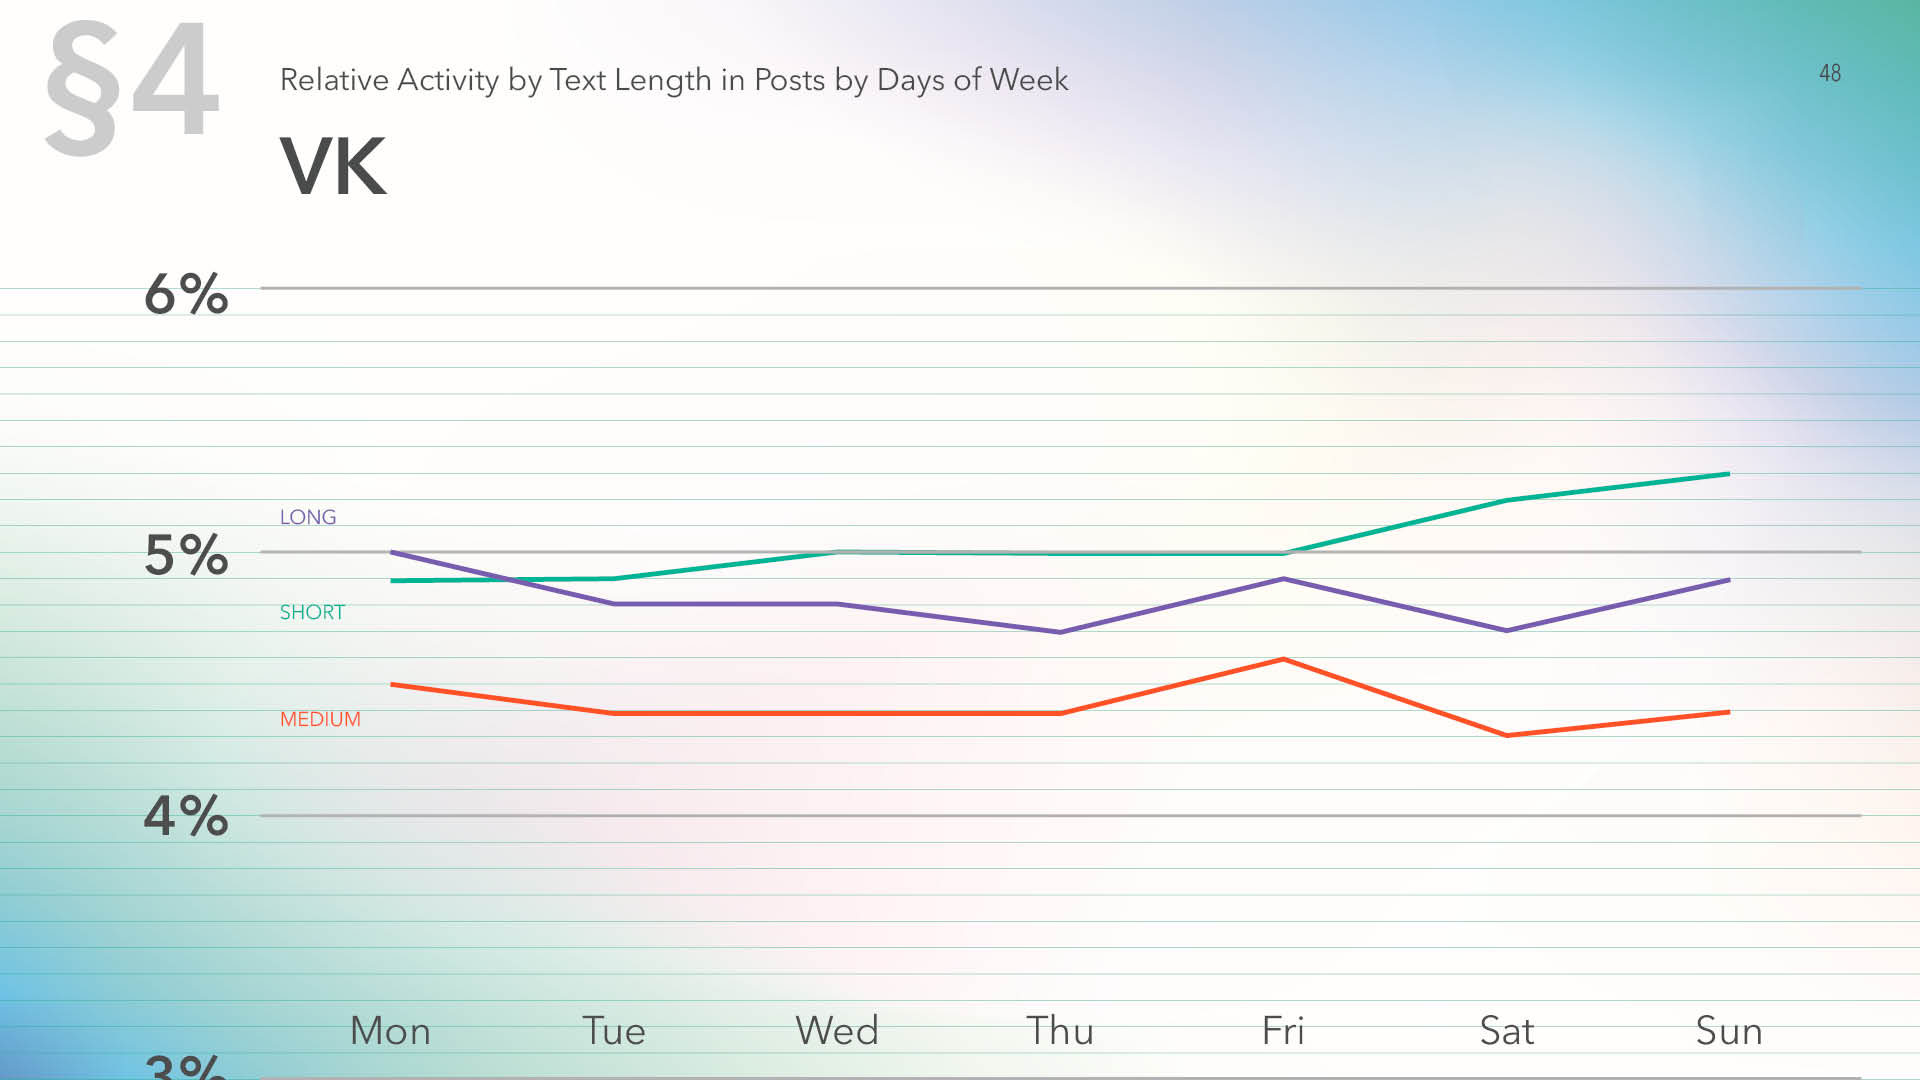 Relative activity on Vk by text length in posts by days of week for 2019